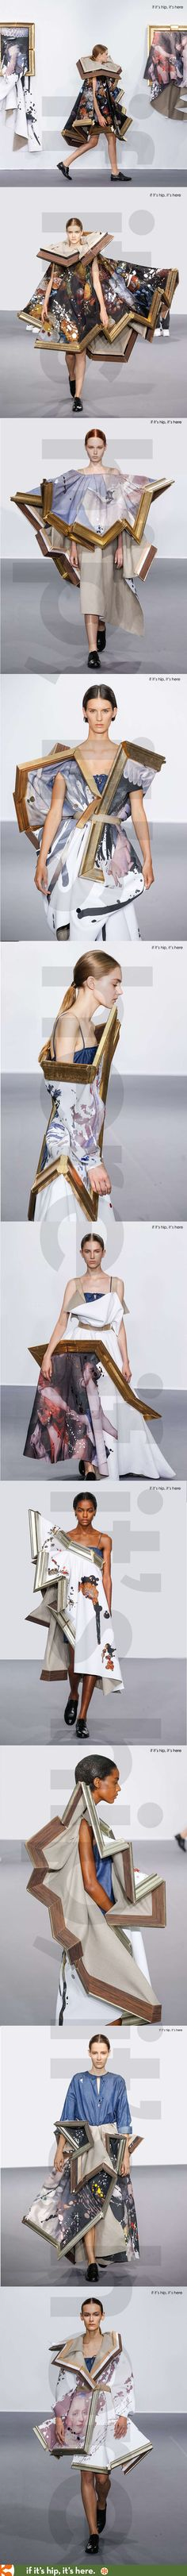 Viktor & Rolf 2015 Looks like this would be VERY UNCOMFORTABLE, LOL! jαɢlαdy